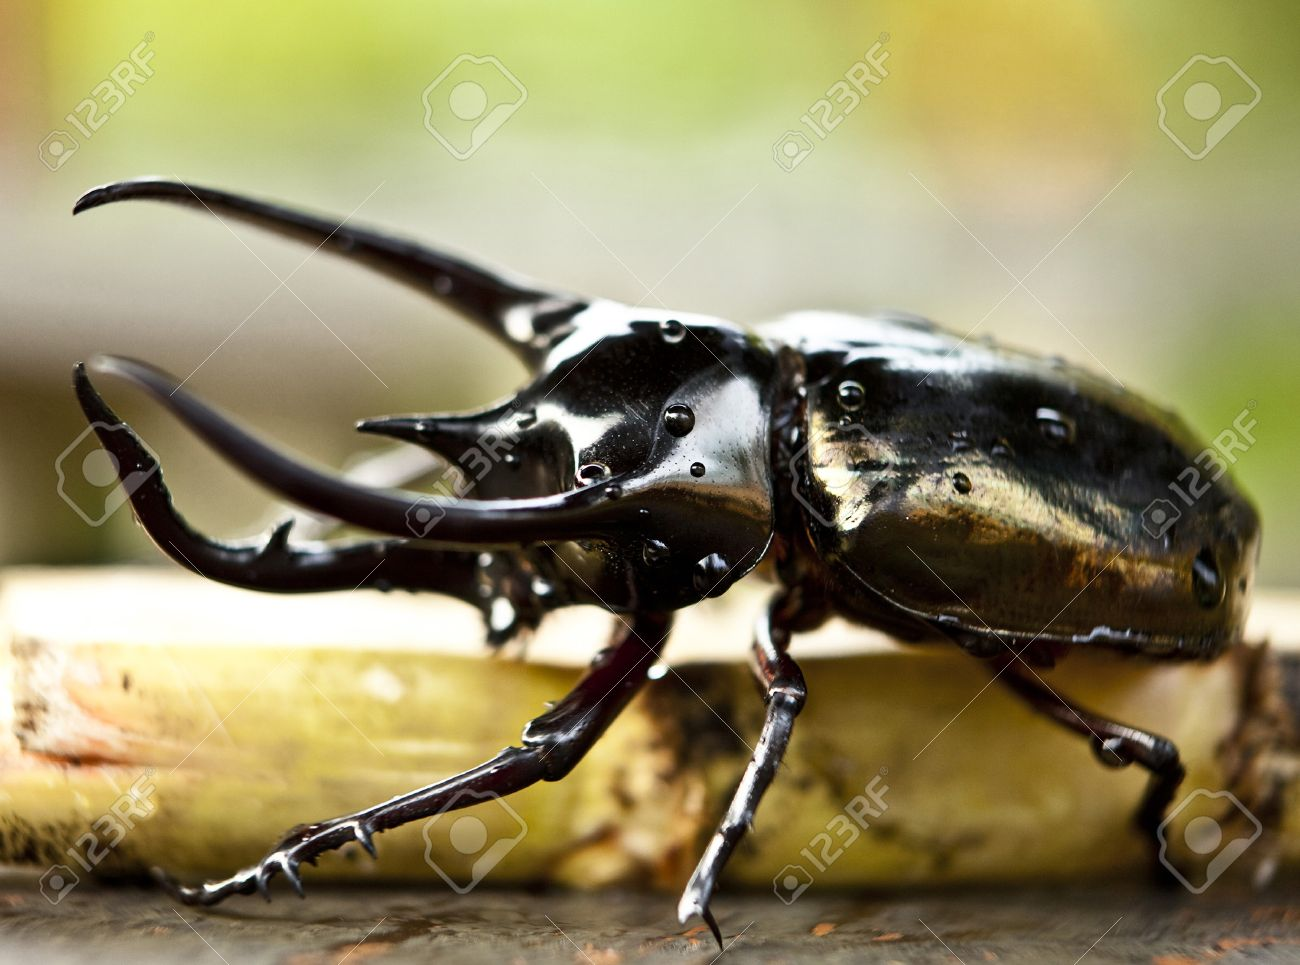 Horned beetle insect